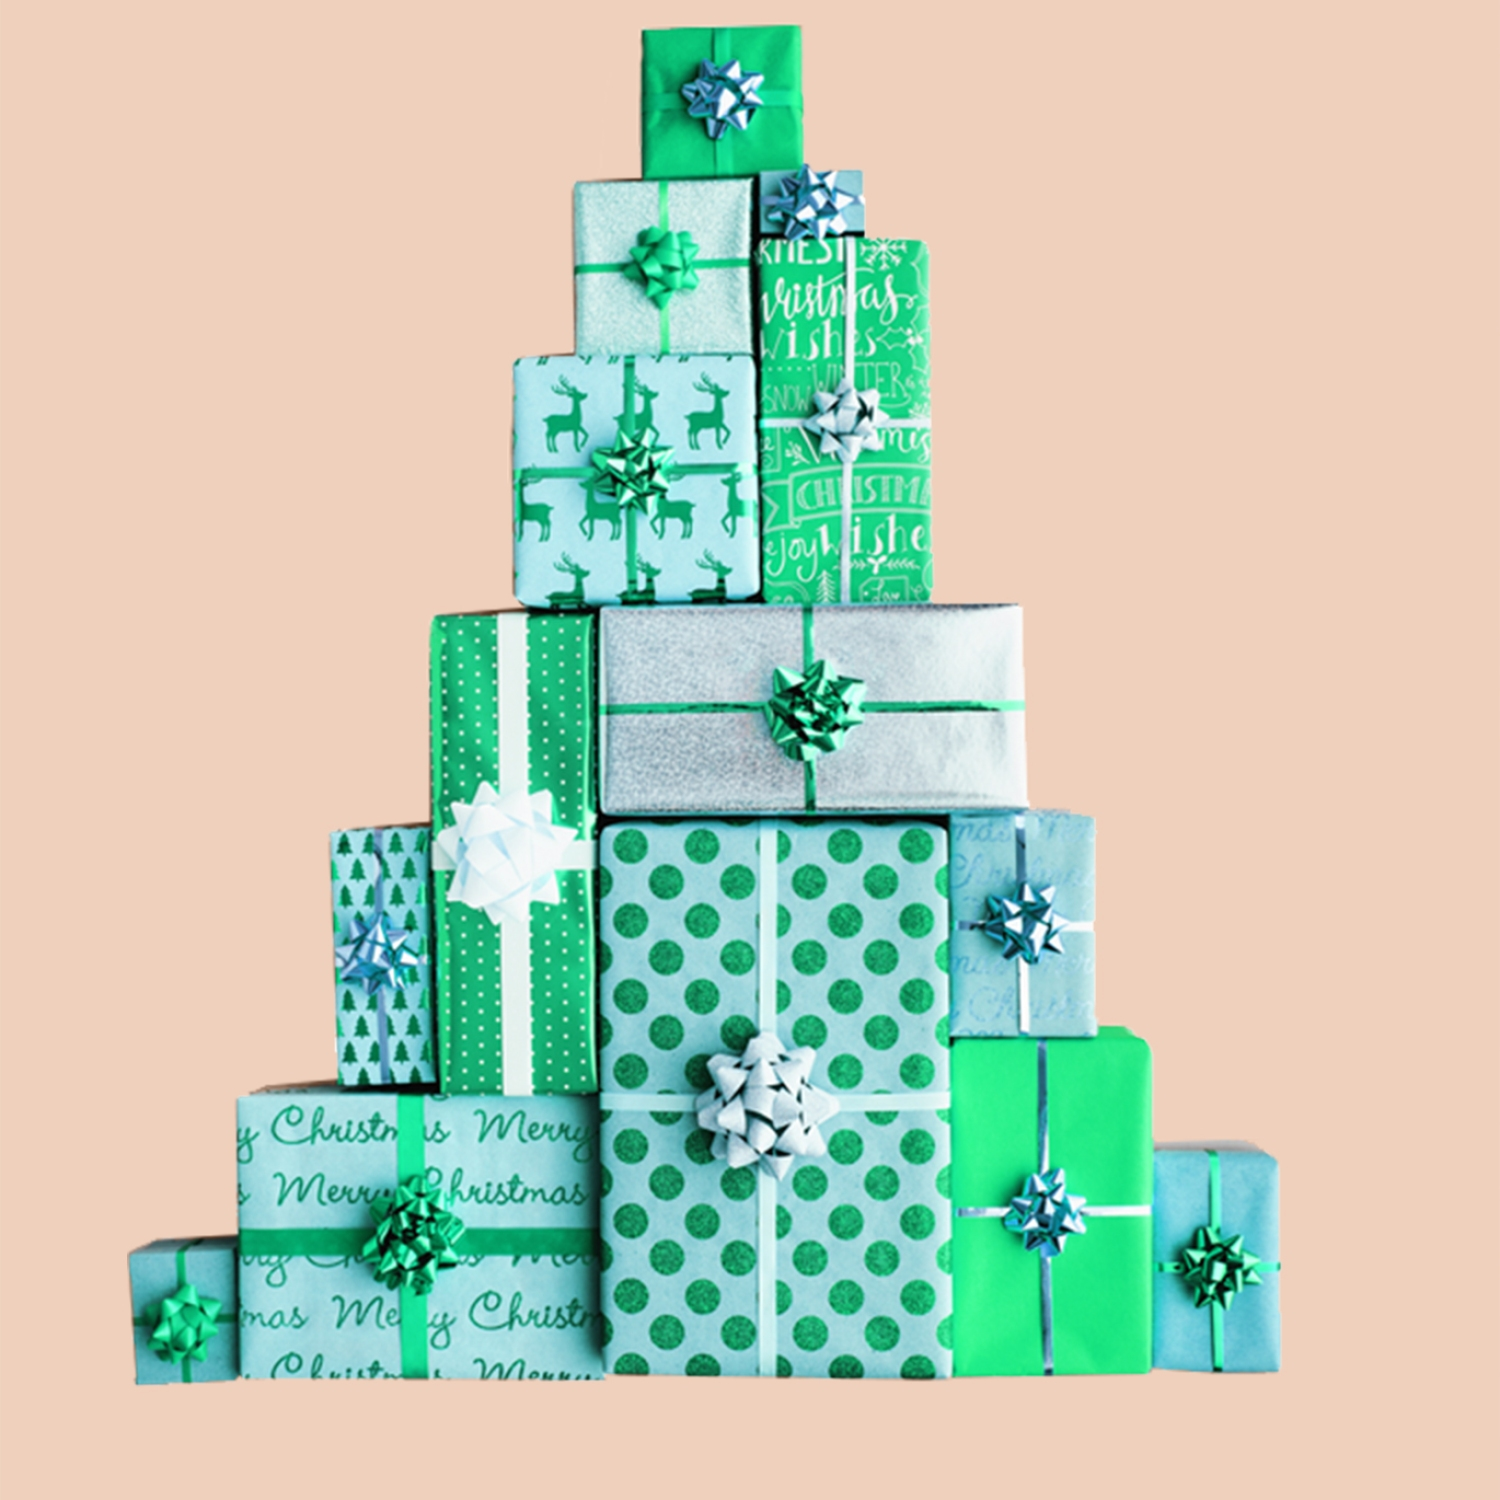 Gifts stacked in the shape of a Christmas tree | Organized